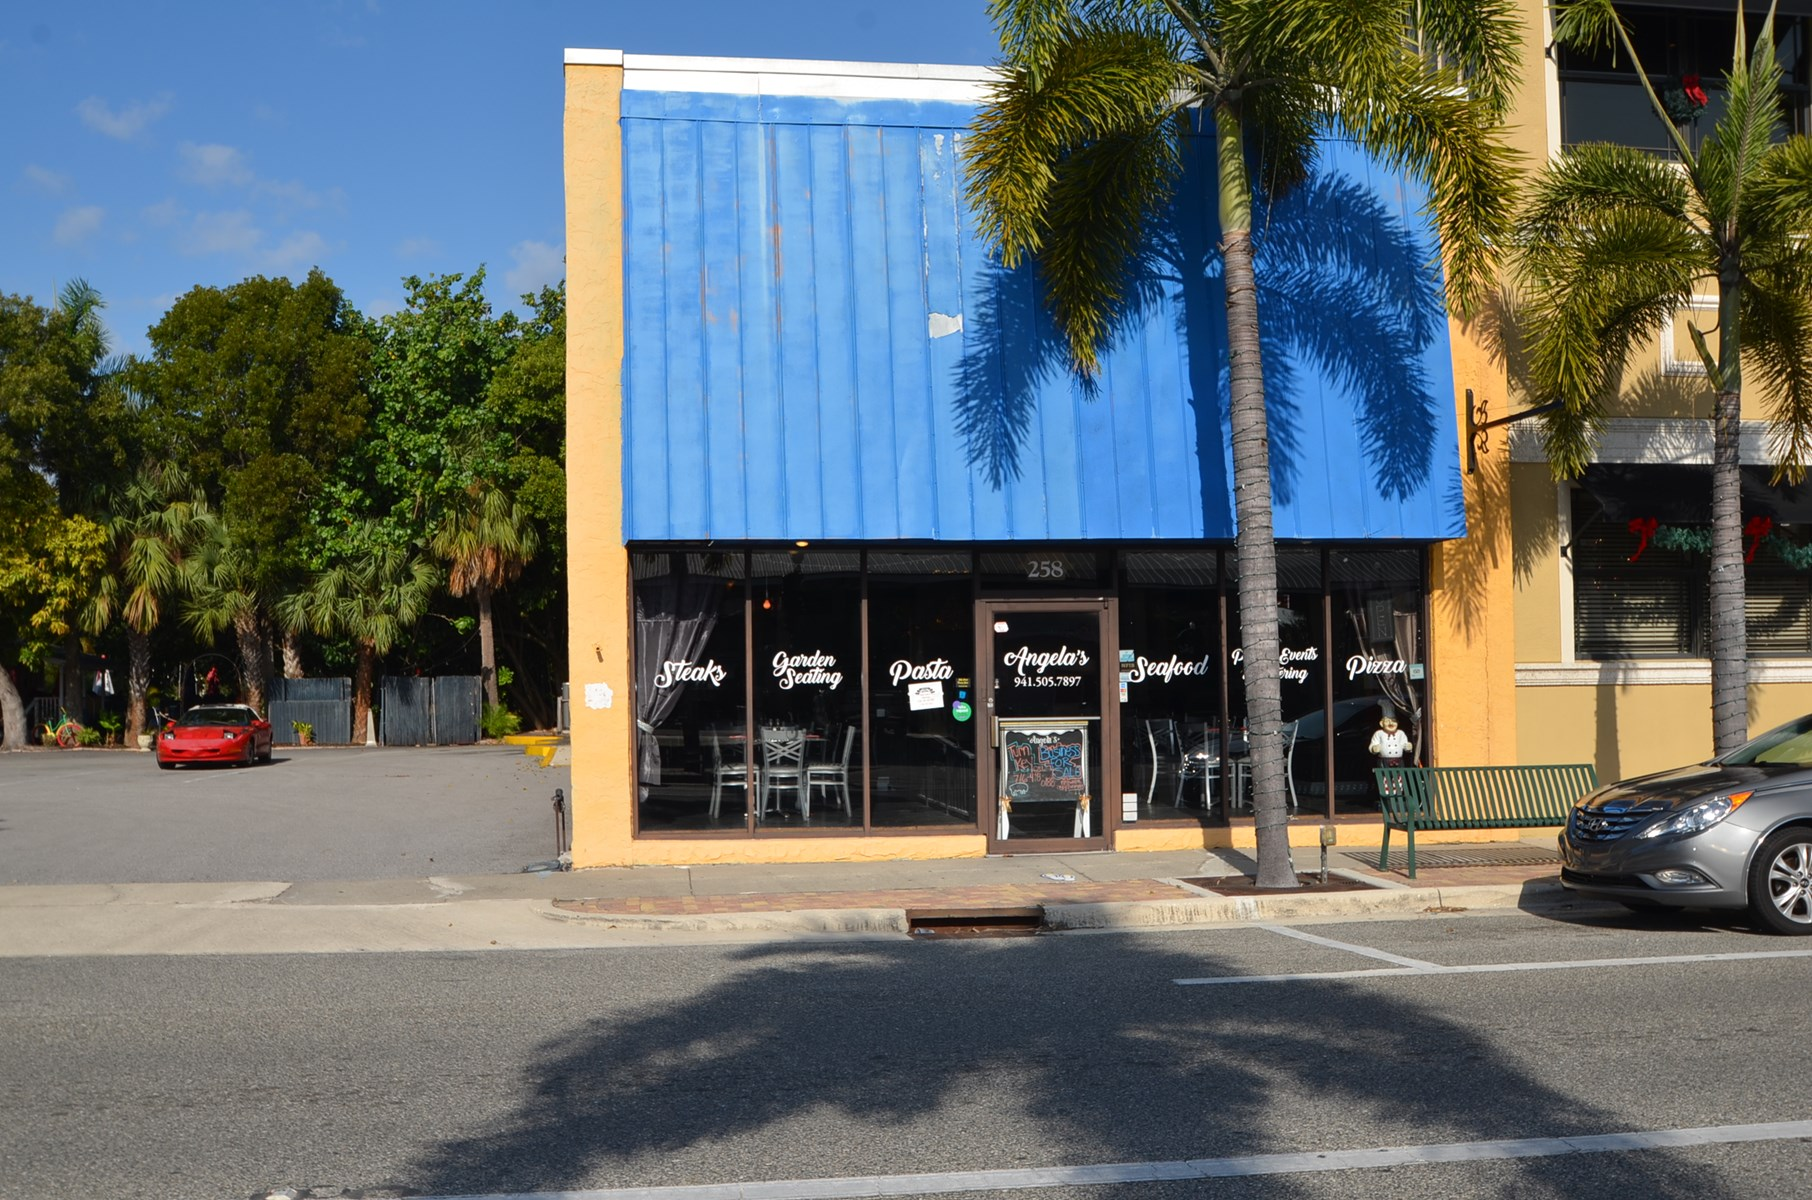 Restaurant Business for Sale in Punta Gorda, Florida!